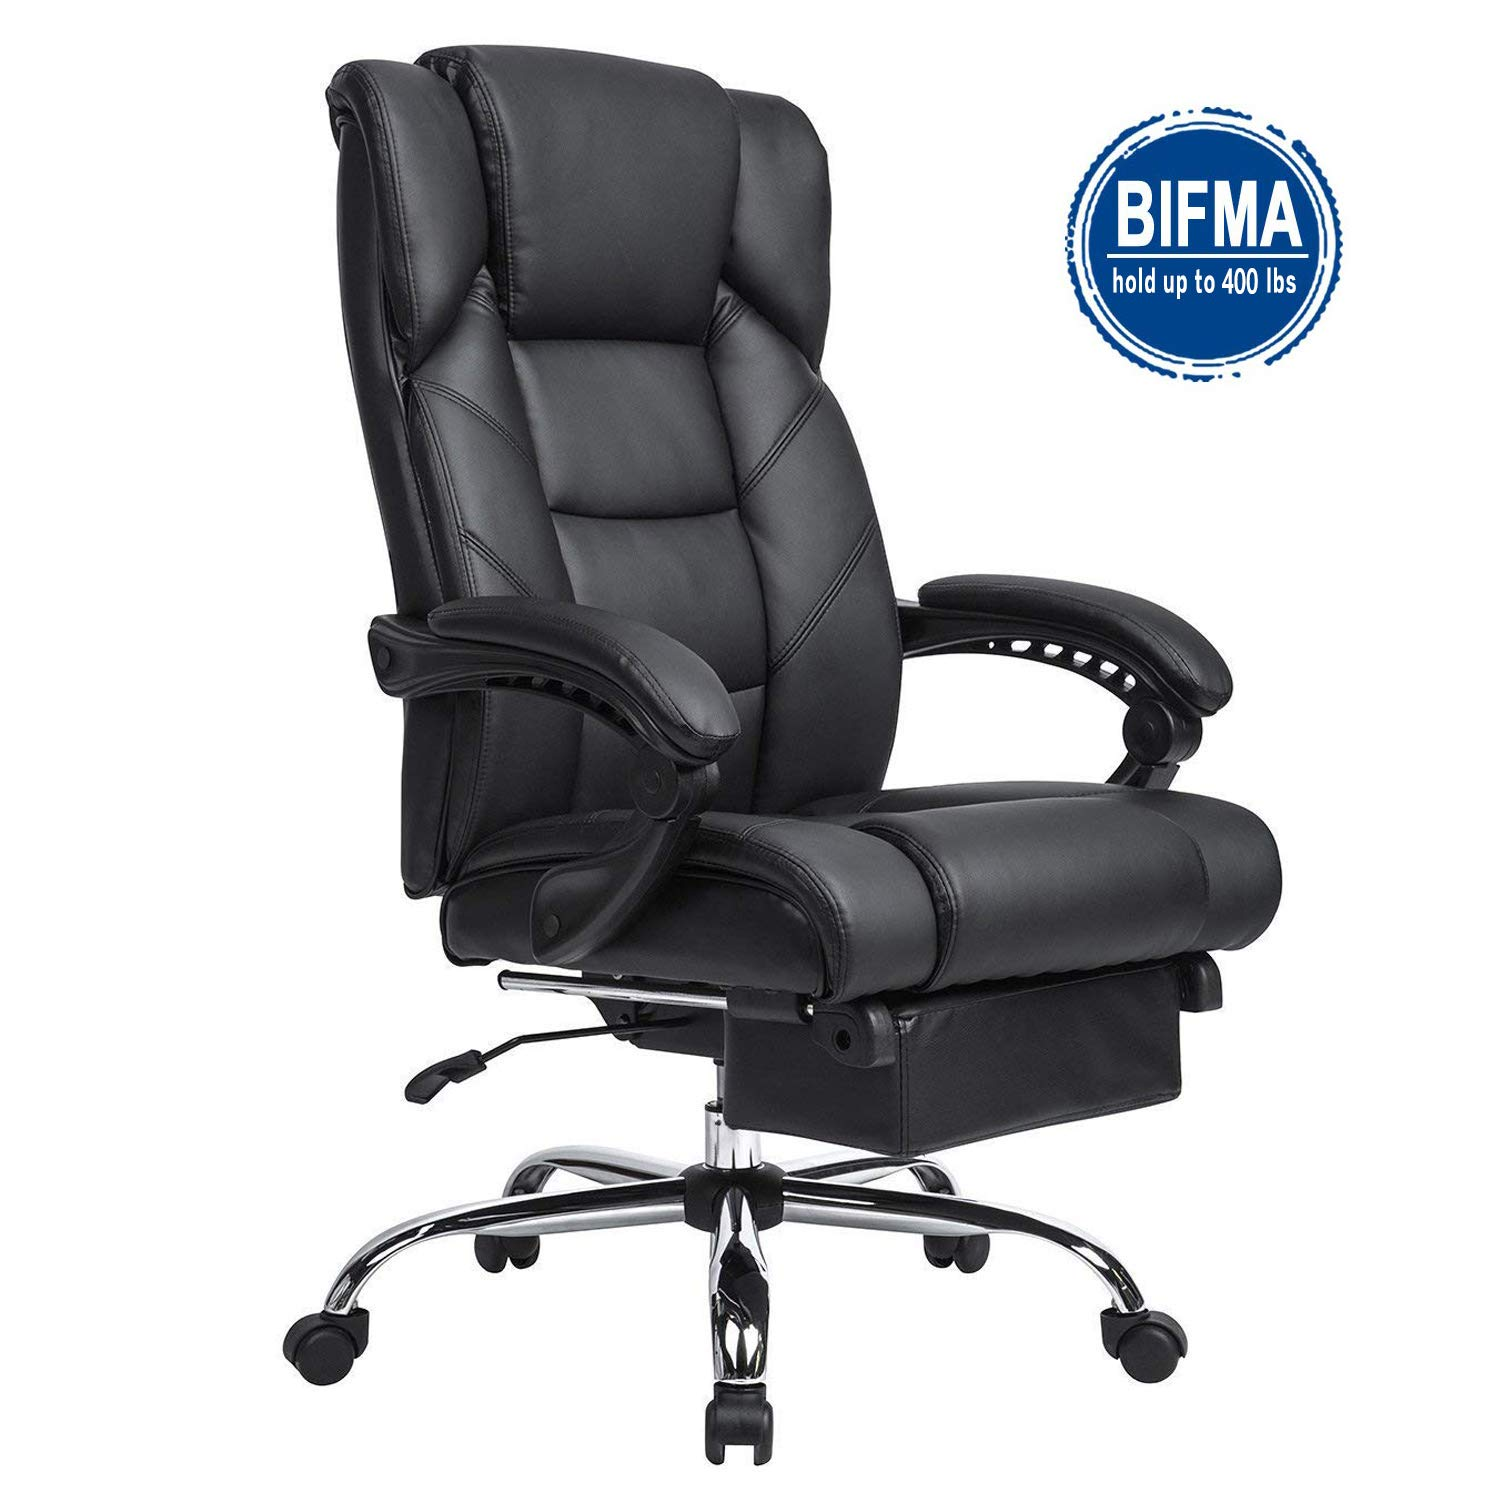 KADIRYA Reclining Leather Office Chair-High Back Executive Chair with Adjustable Angle Recline Locking System and Footrest Thick Padding for Comfort and Ergonomic Design 400LBS